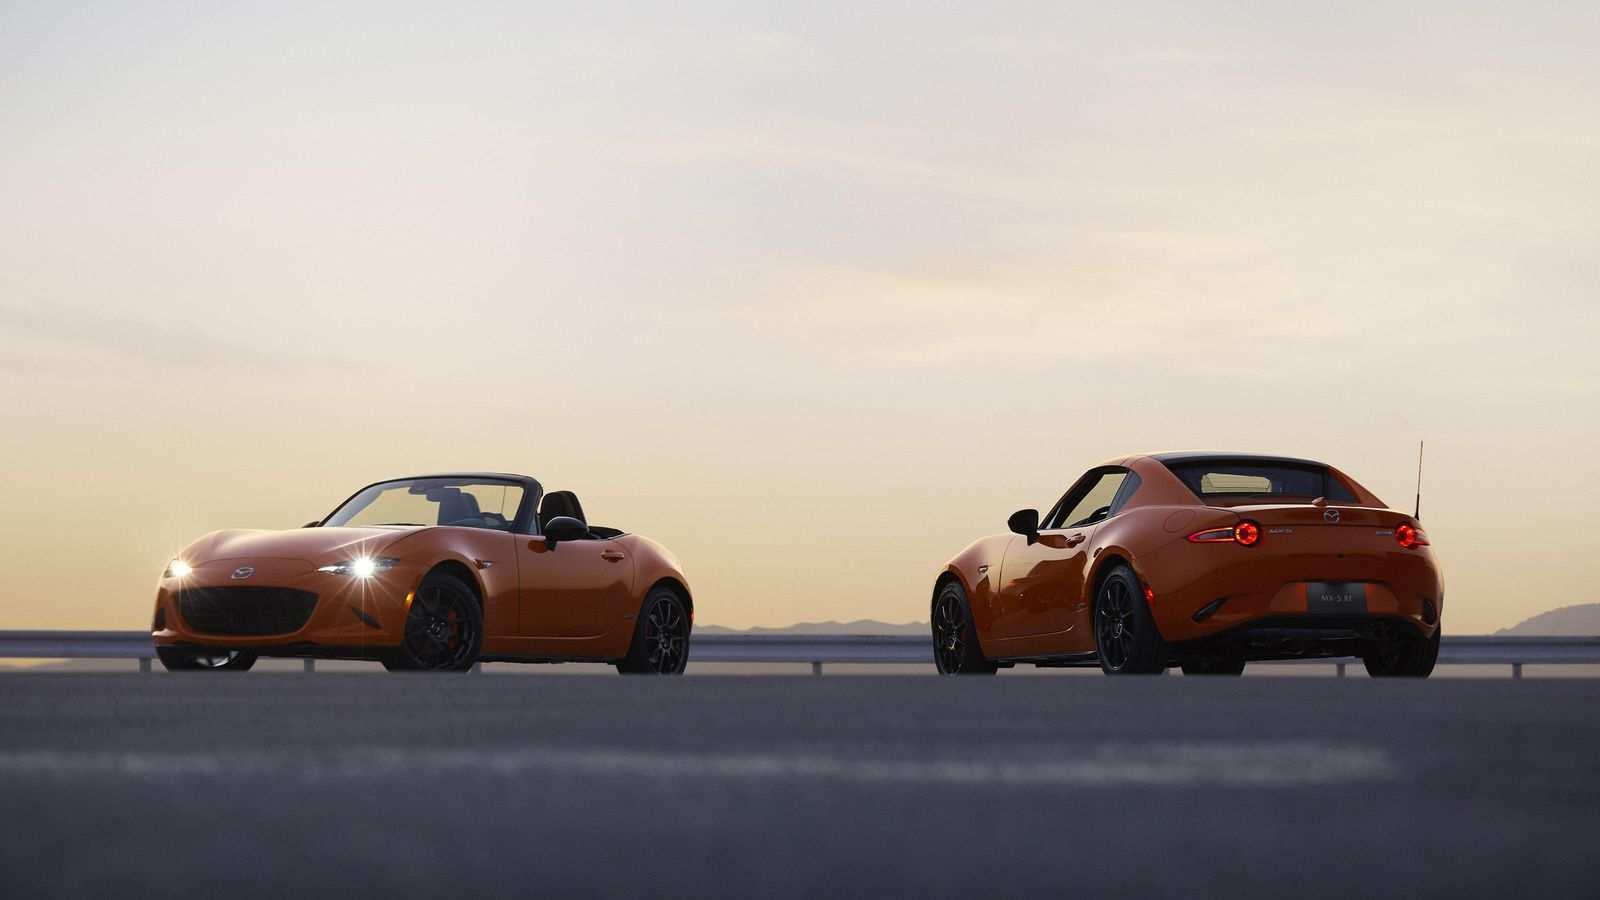 98 A 2020 Mazda Mx 5 Miata Price And Release Date